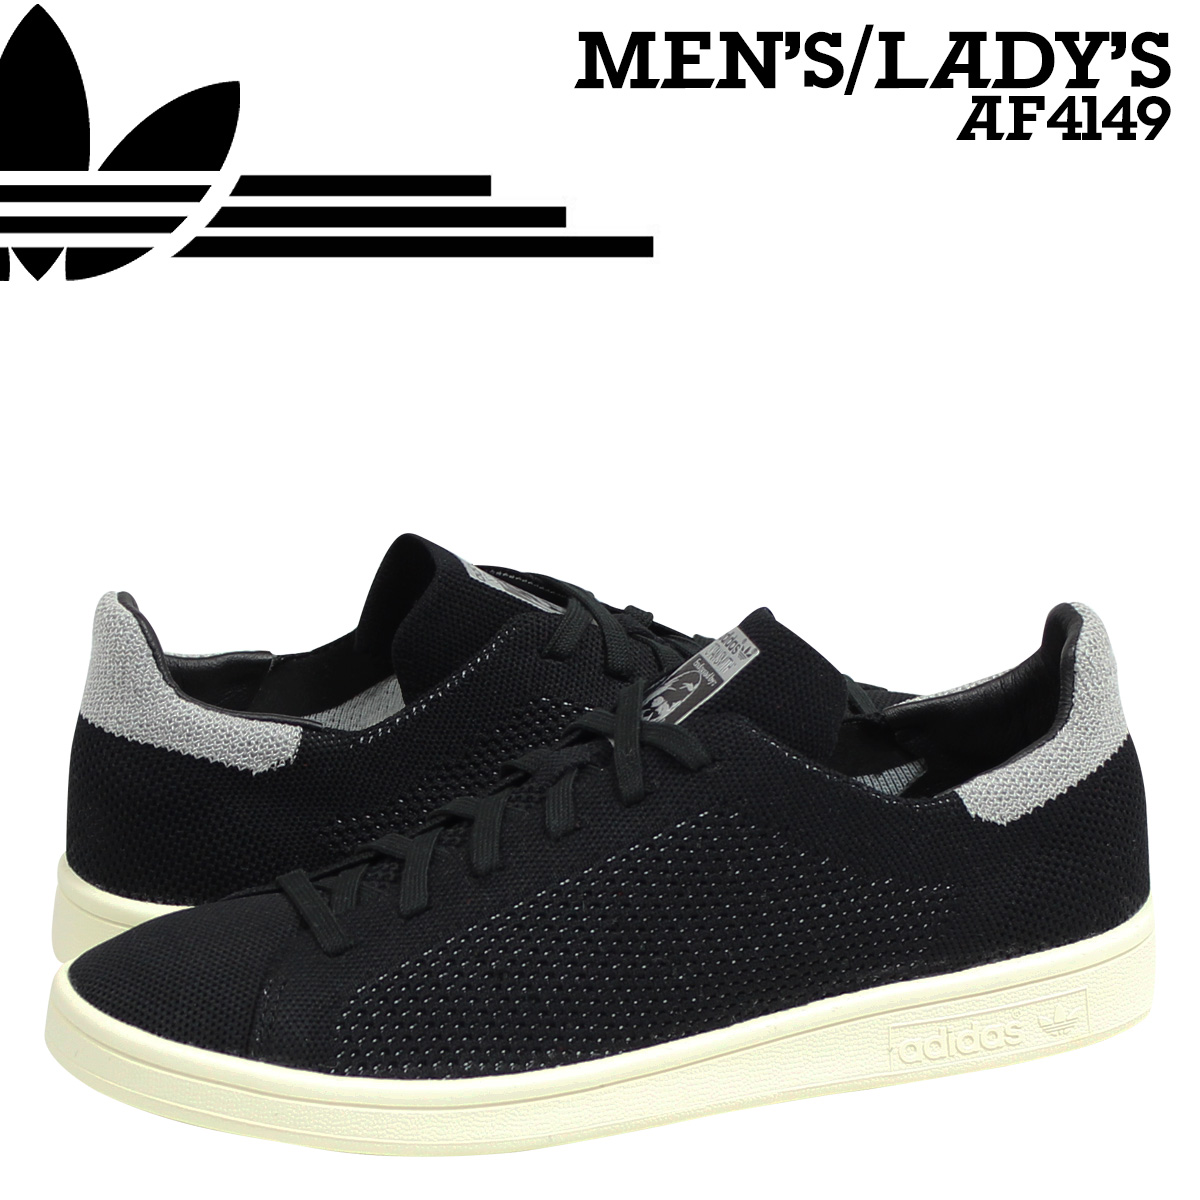 info for 1004b d83a7 Whats up Sports  adidas Originals adidas originals Stan Smith sneakers STAN  SMITH PK REFLECTIVE CONSORTIUM AF4149 men s women s shoes black   Rakuten  Global ...